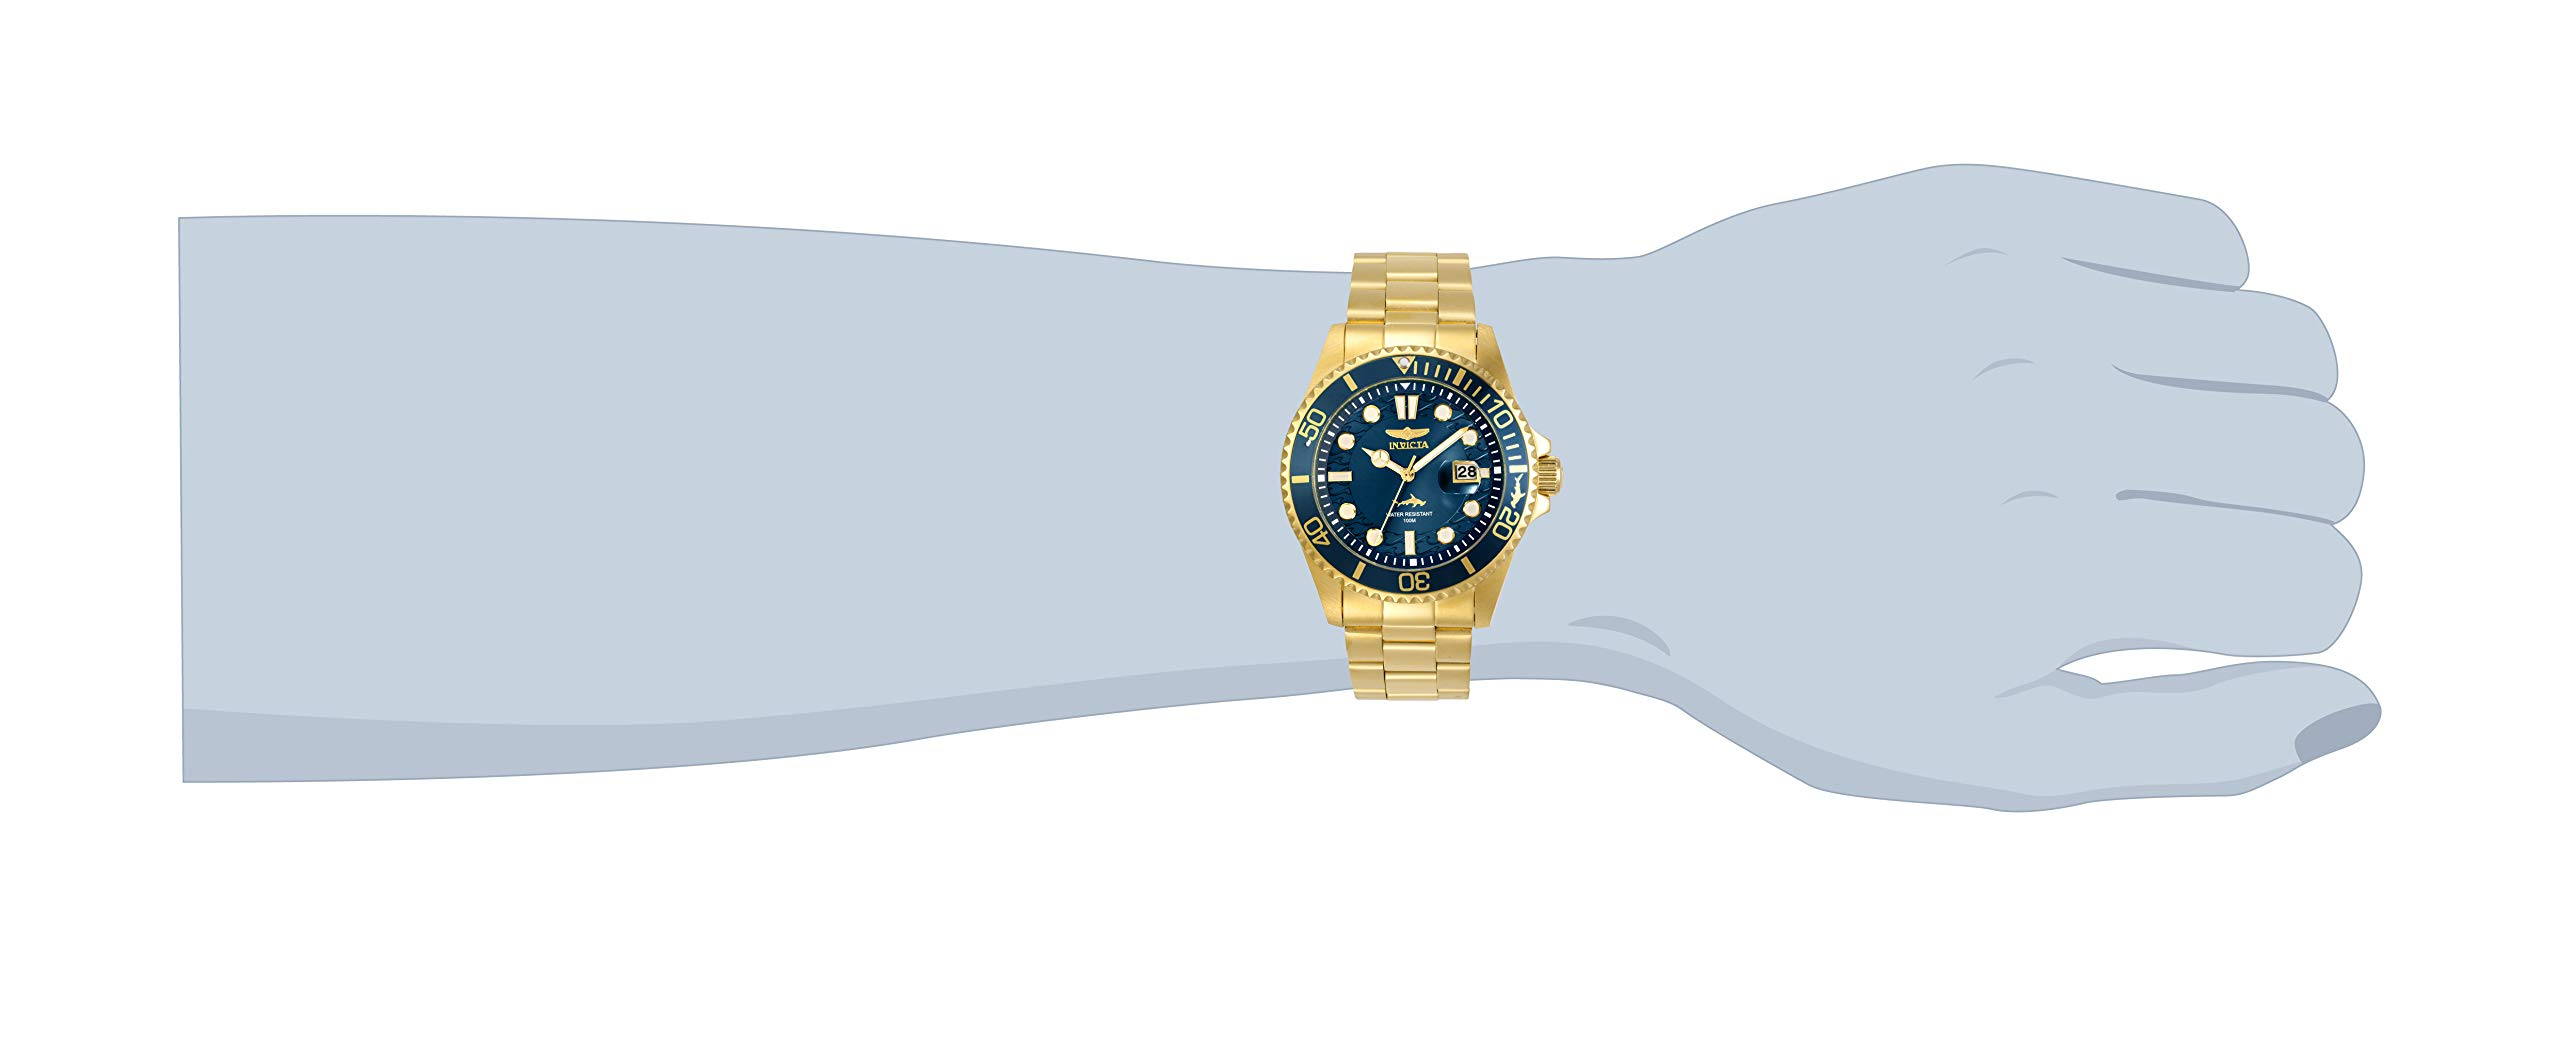 Invicta Men's Pro Diver Quartz Watch with Stainless Steel Strap, Gold, 22 (Model: 30024) by Invicta (Image #2)